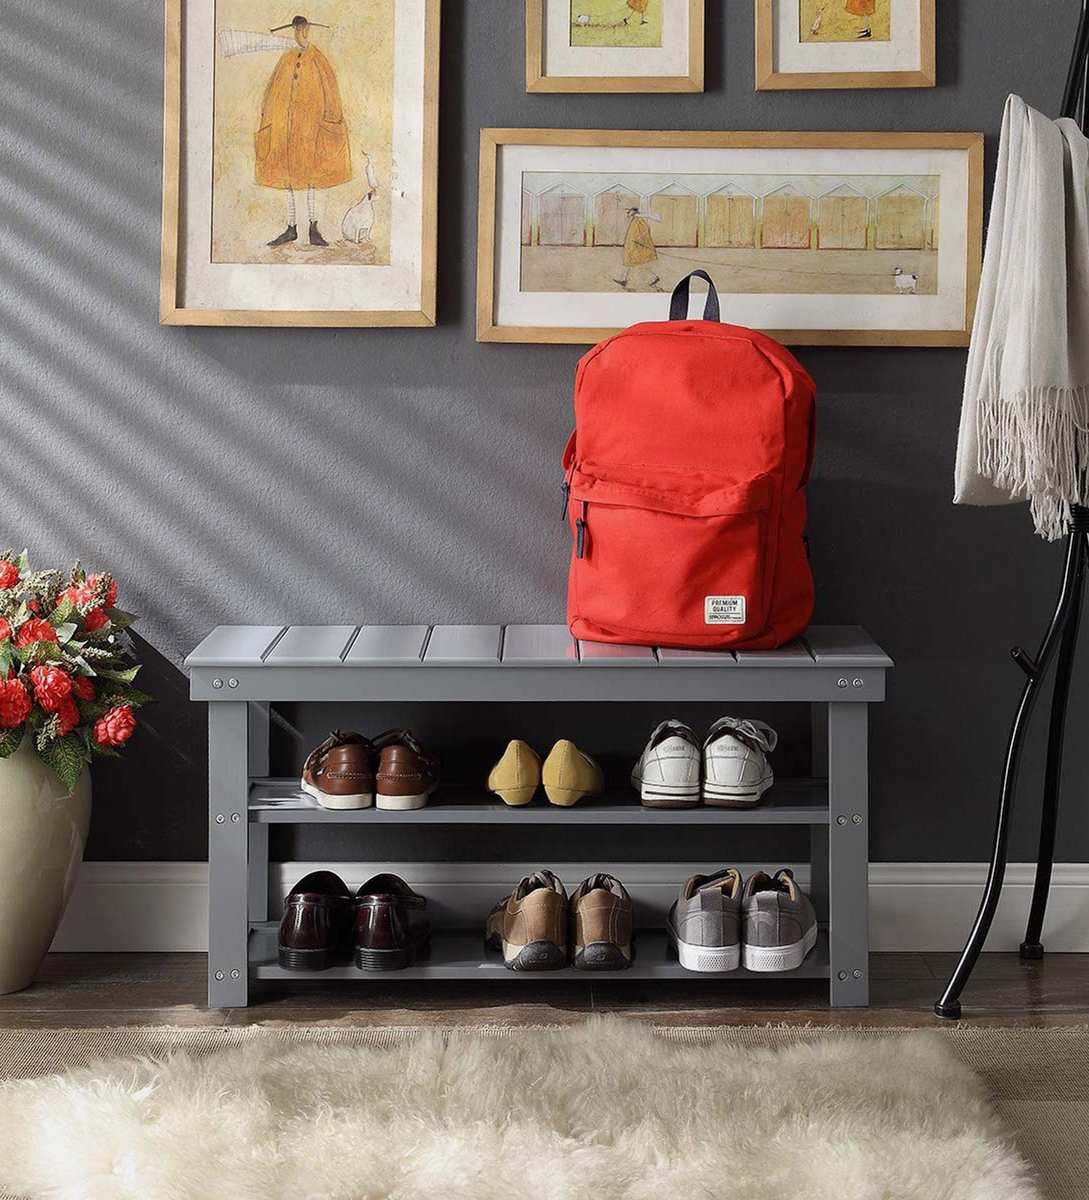 Gray bench with shelves underneath.